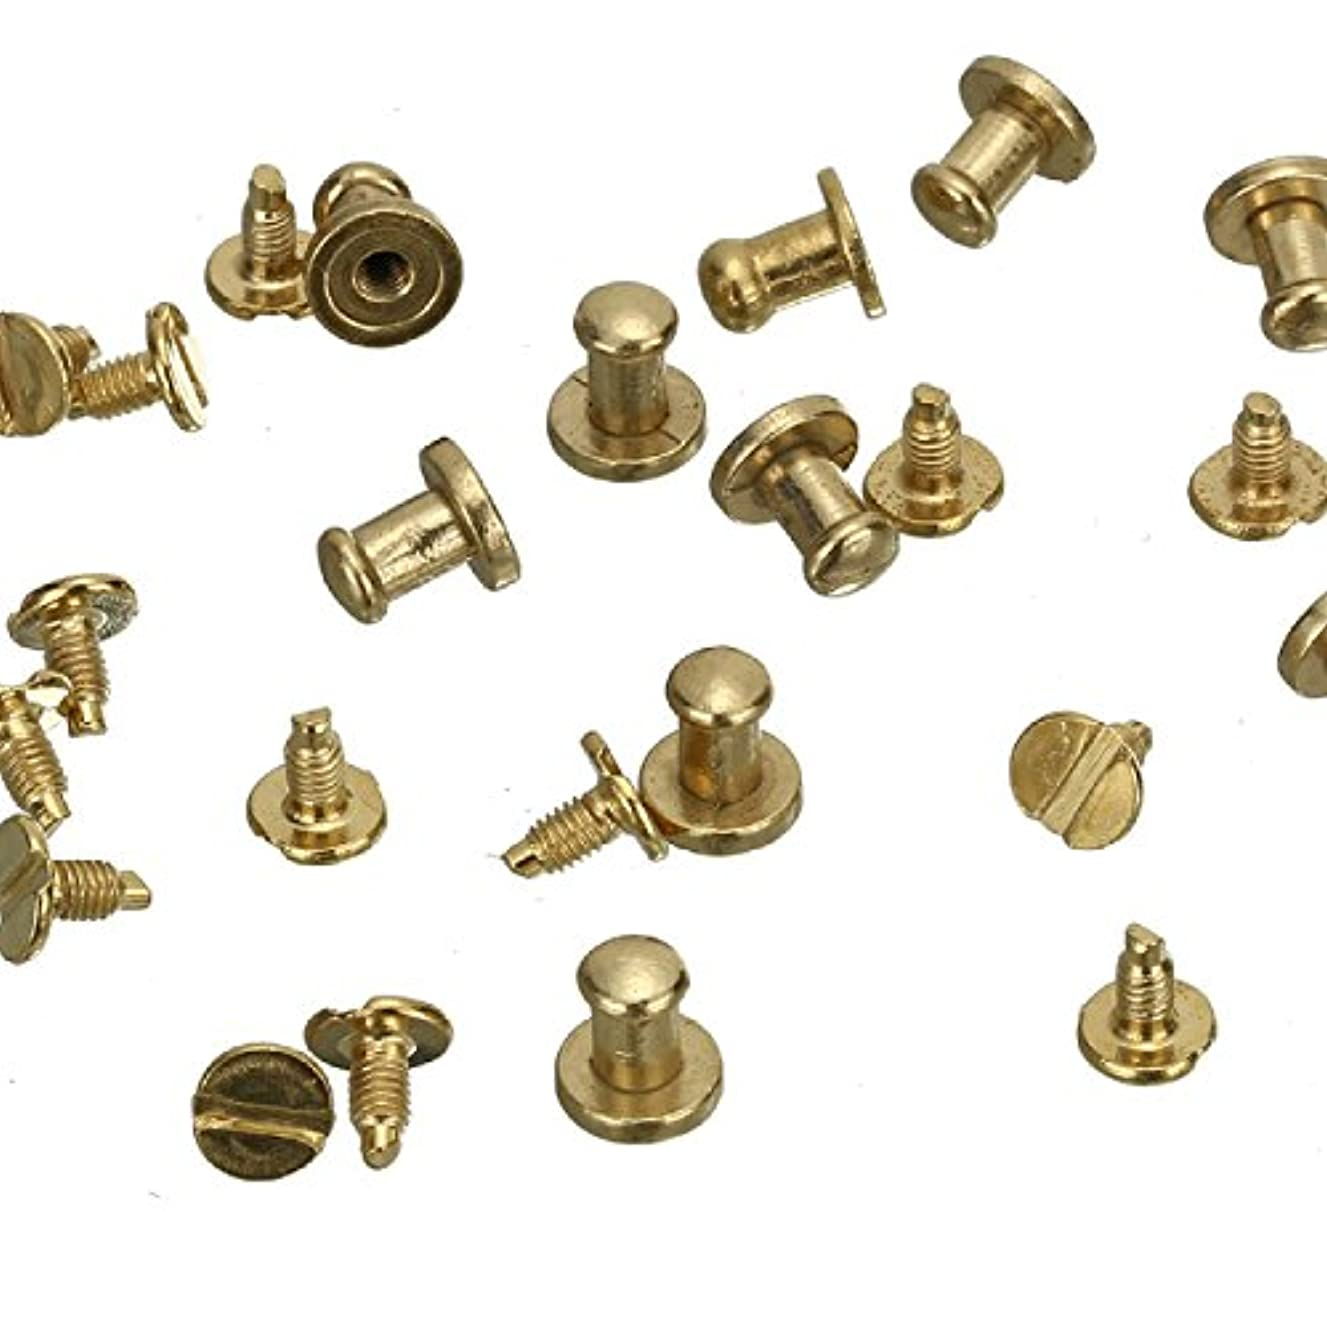 RUBYCA 100 Sets Gold Color Button Spike and Studs Metal Screw-Back Leather-craft DIY 8MM X 8MM